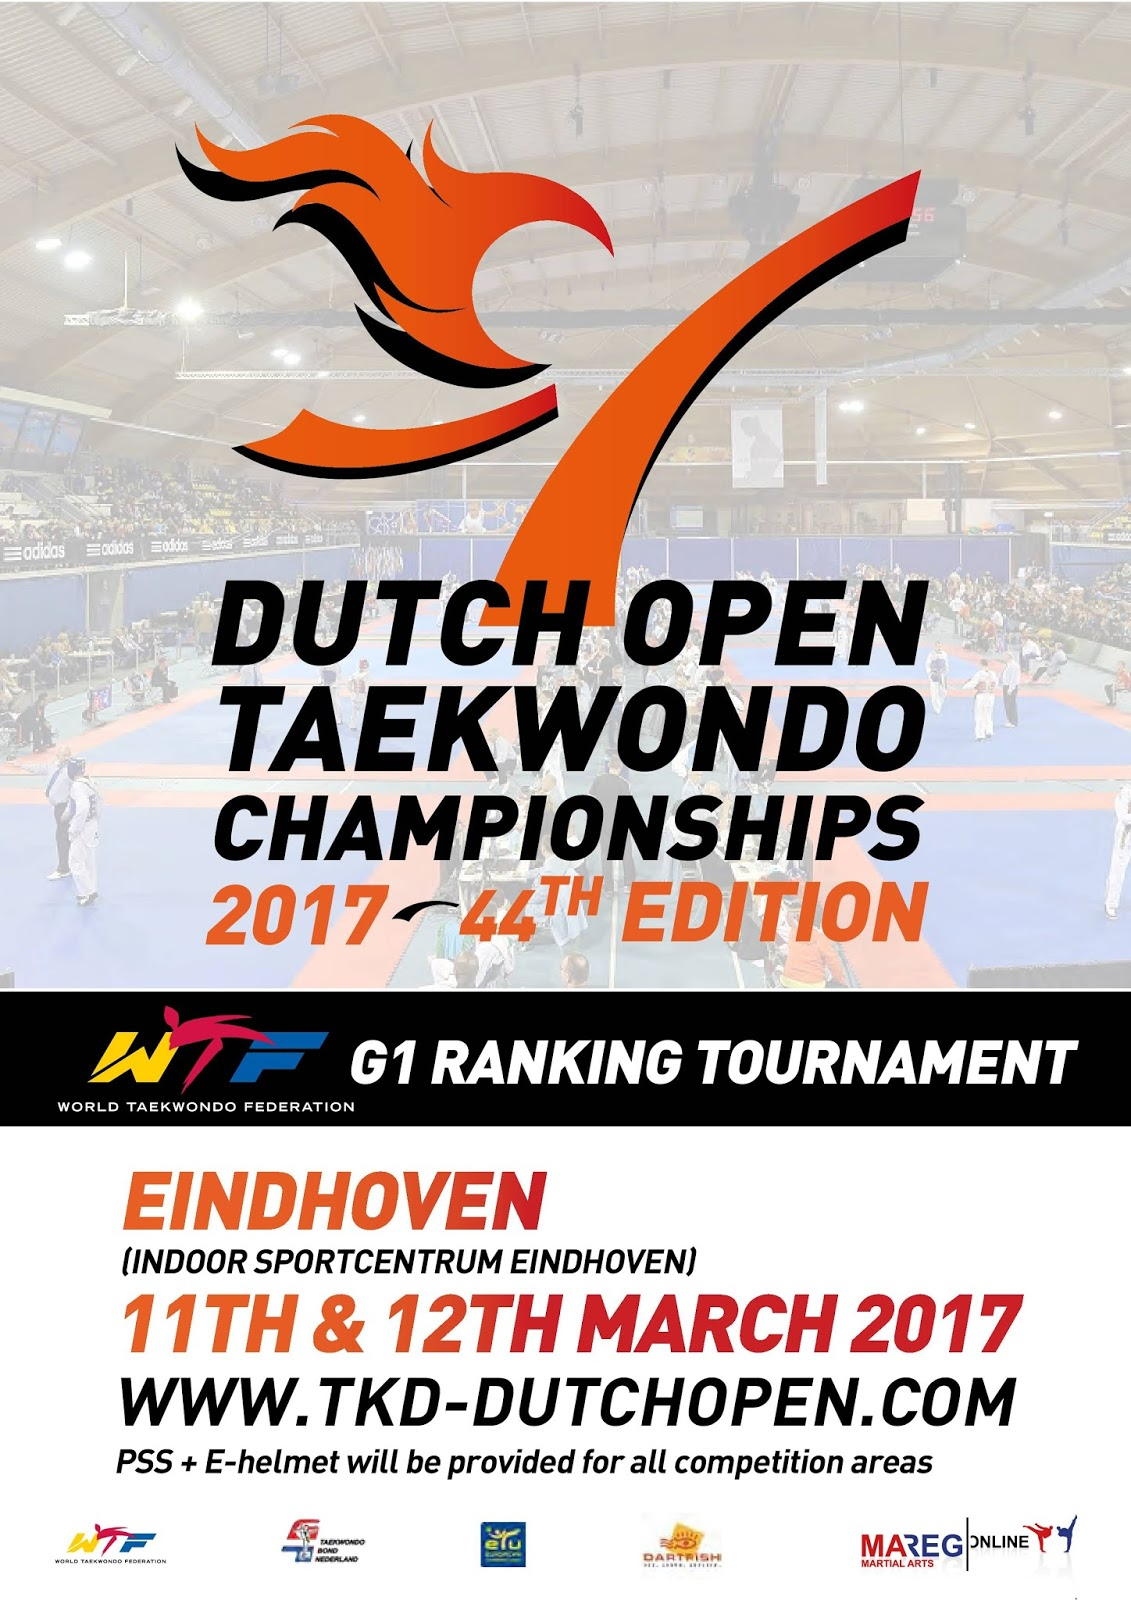 taekwondo greece group: 11/3/2017 - LOTTO DUTCH OPEN